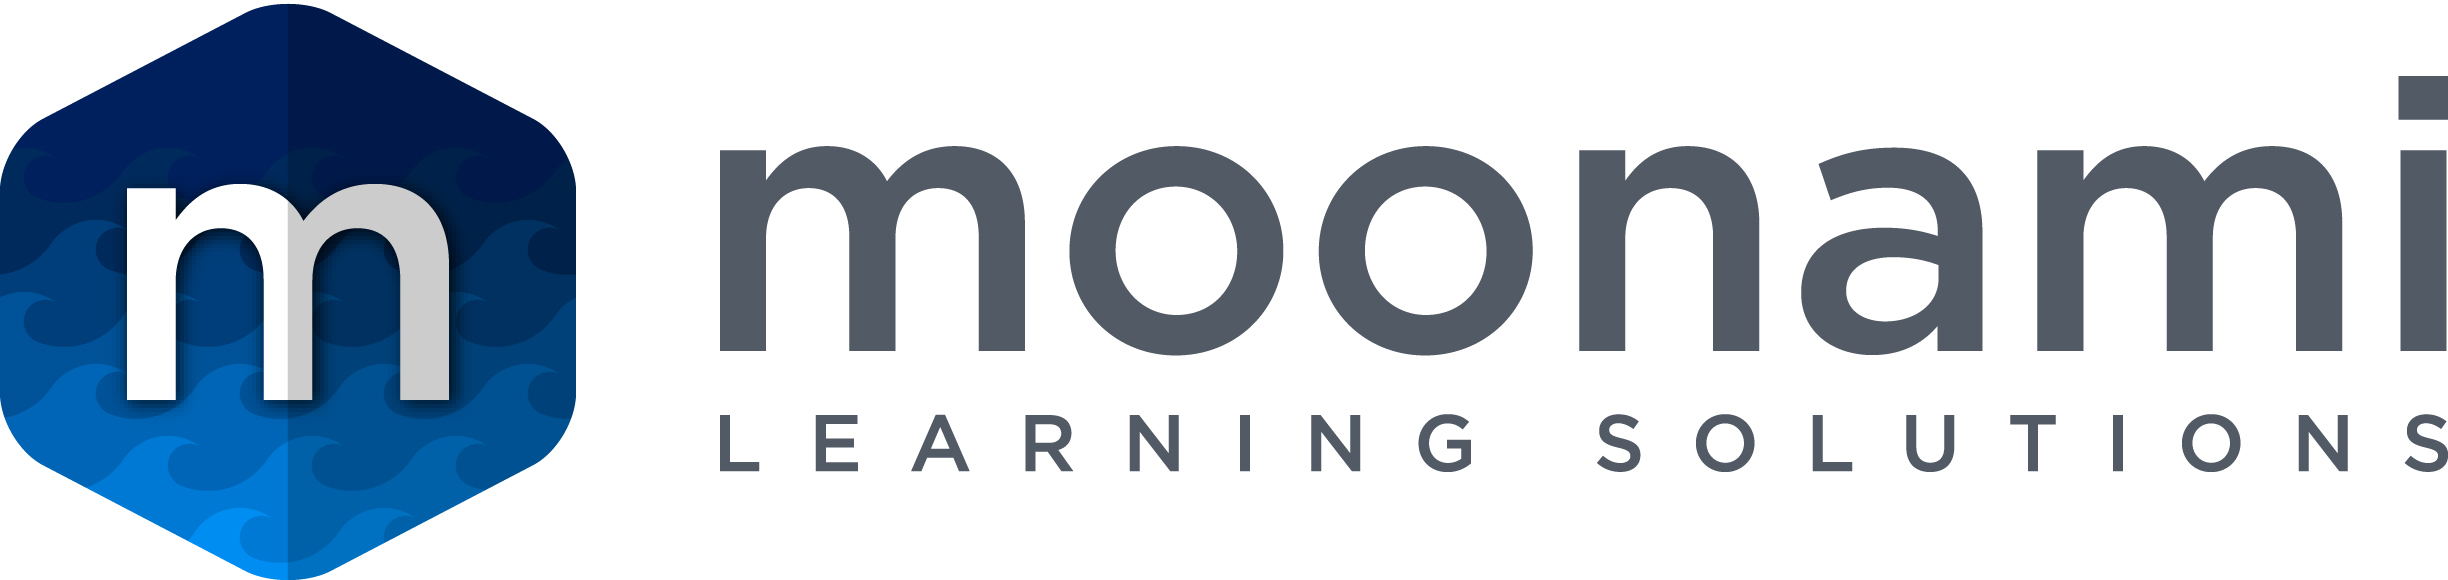 Moonami Learning Solutions logo